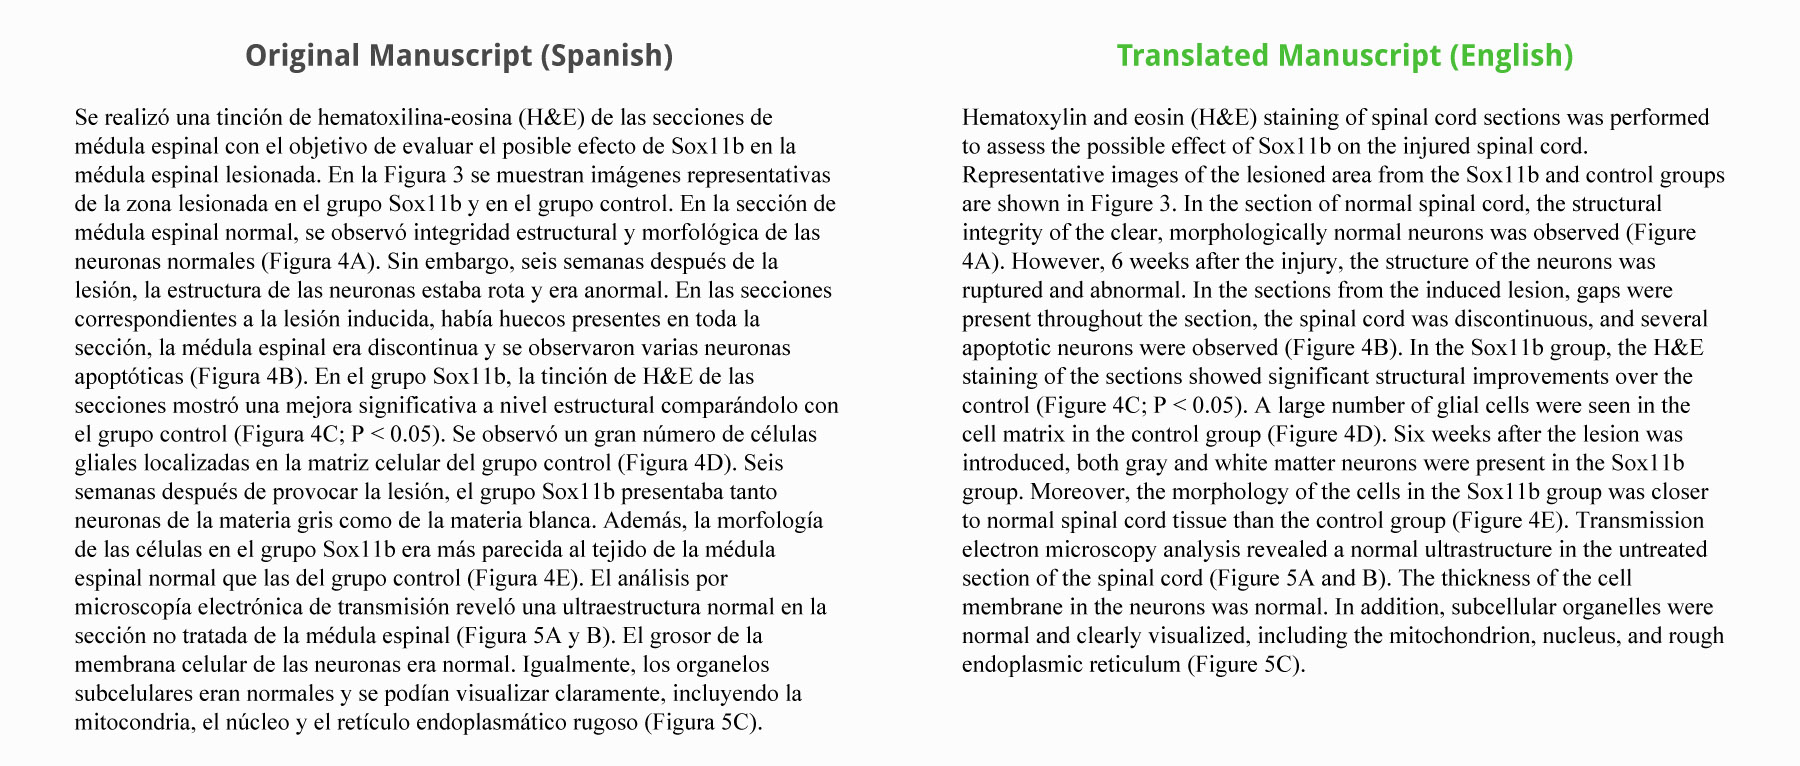 sample scientific editing and translation work editing and translation samples